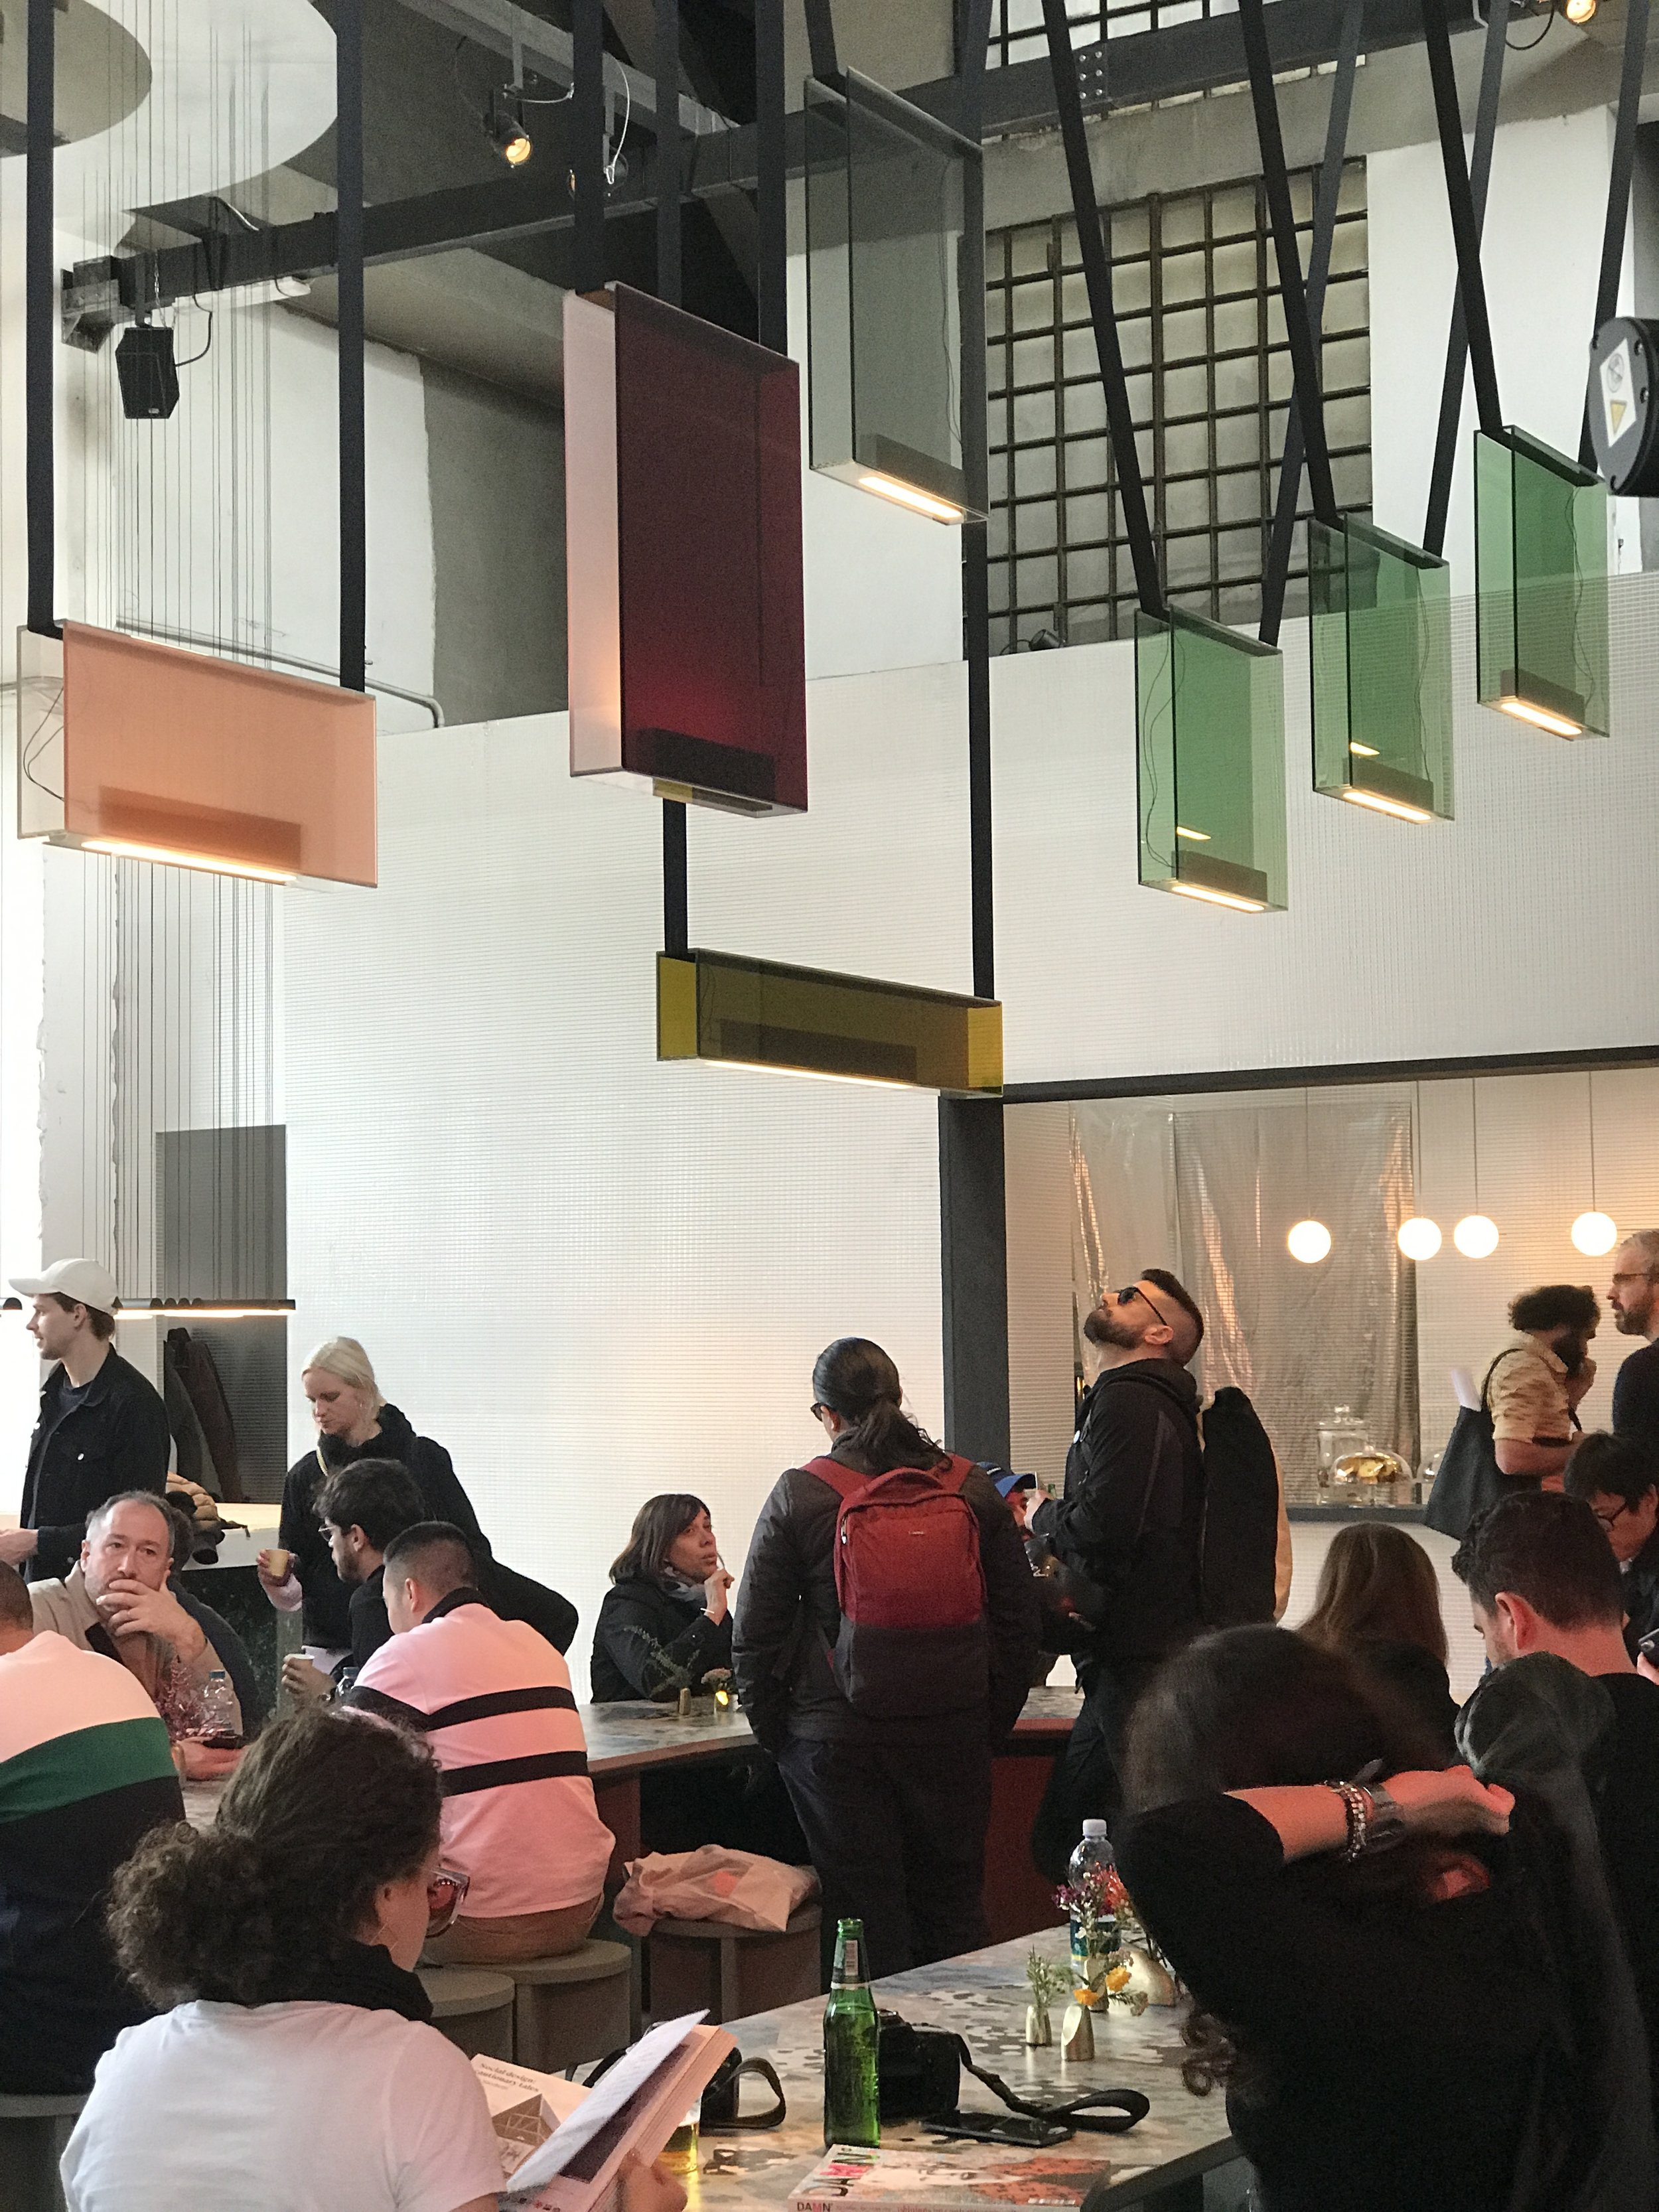 LAMBERT + FILS LUMINAIRES - The installation based in Alcova showcased the Sainte collection in all its glory. The new collection with Rachel Bussin uses layered colourful glass in rectangular forms that just float above their setting – really striking!